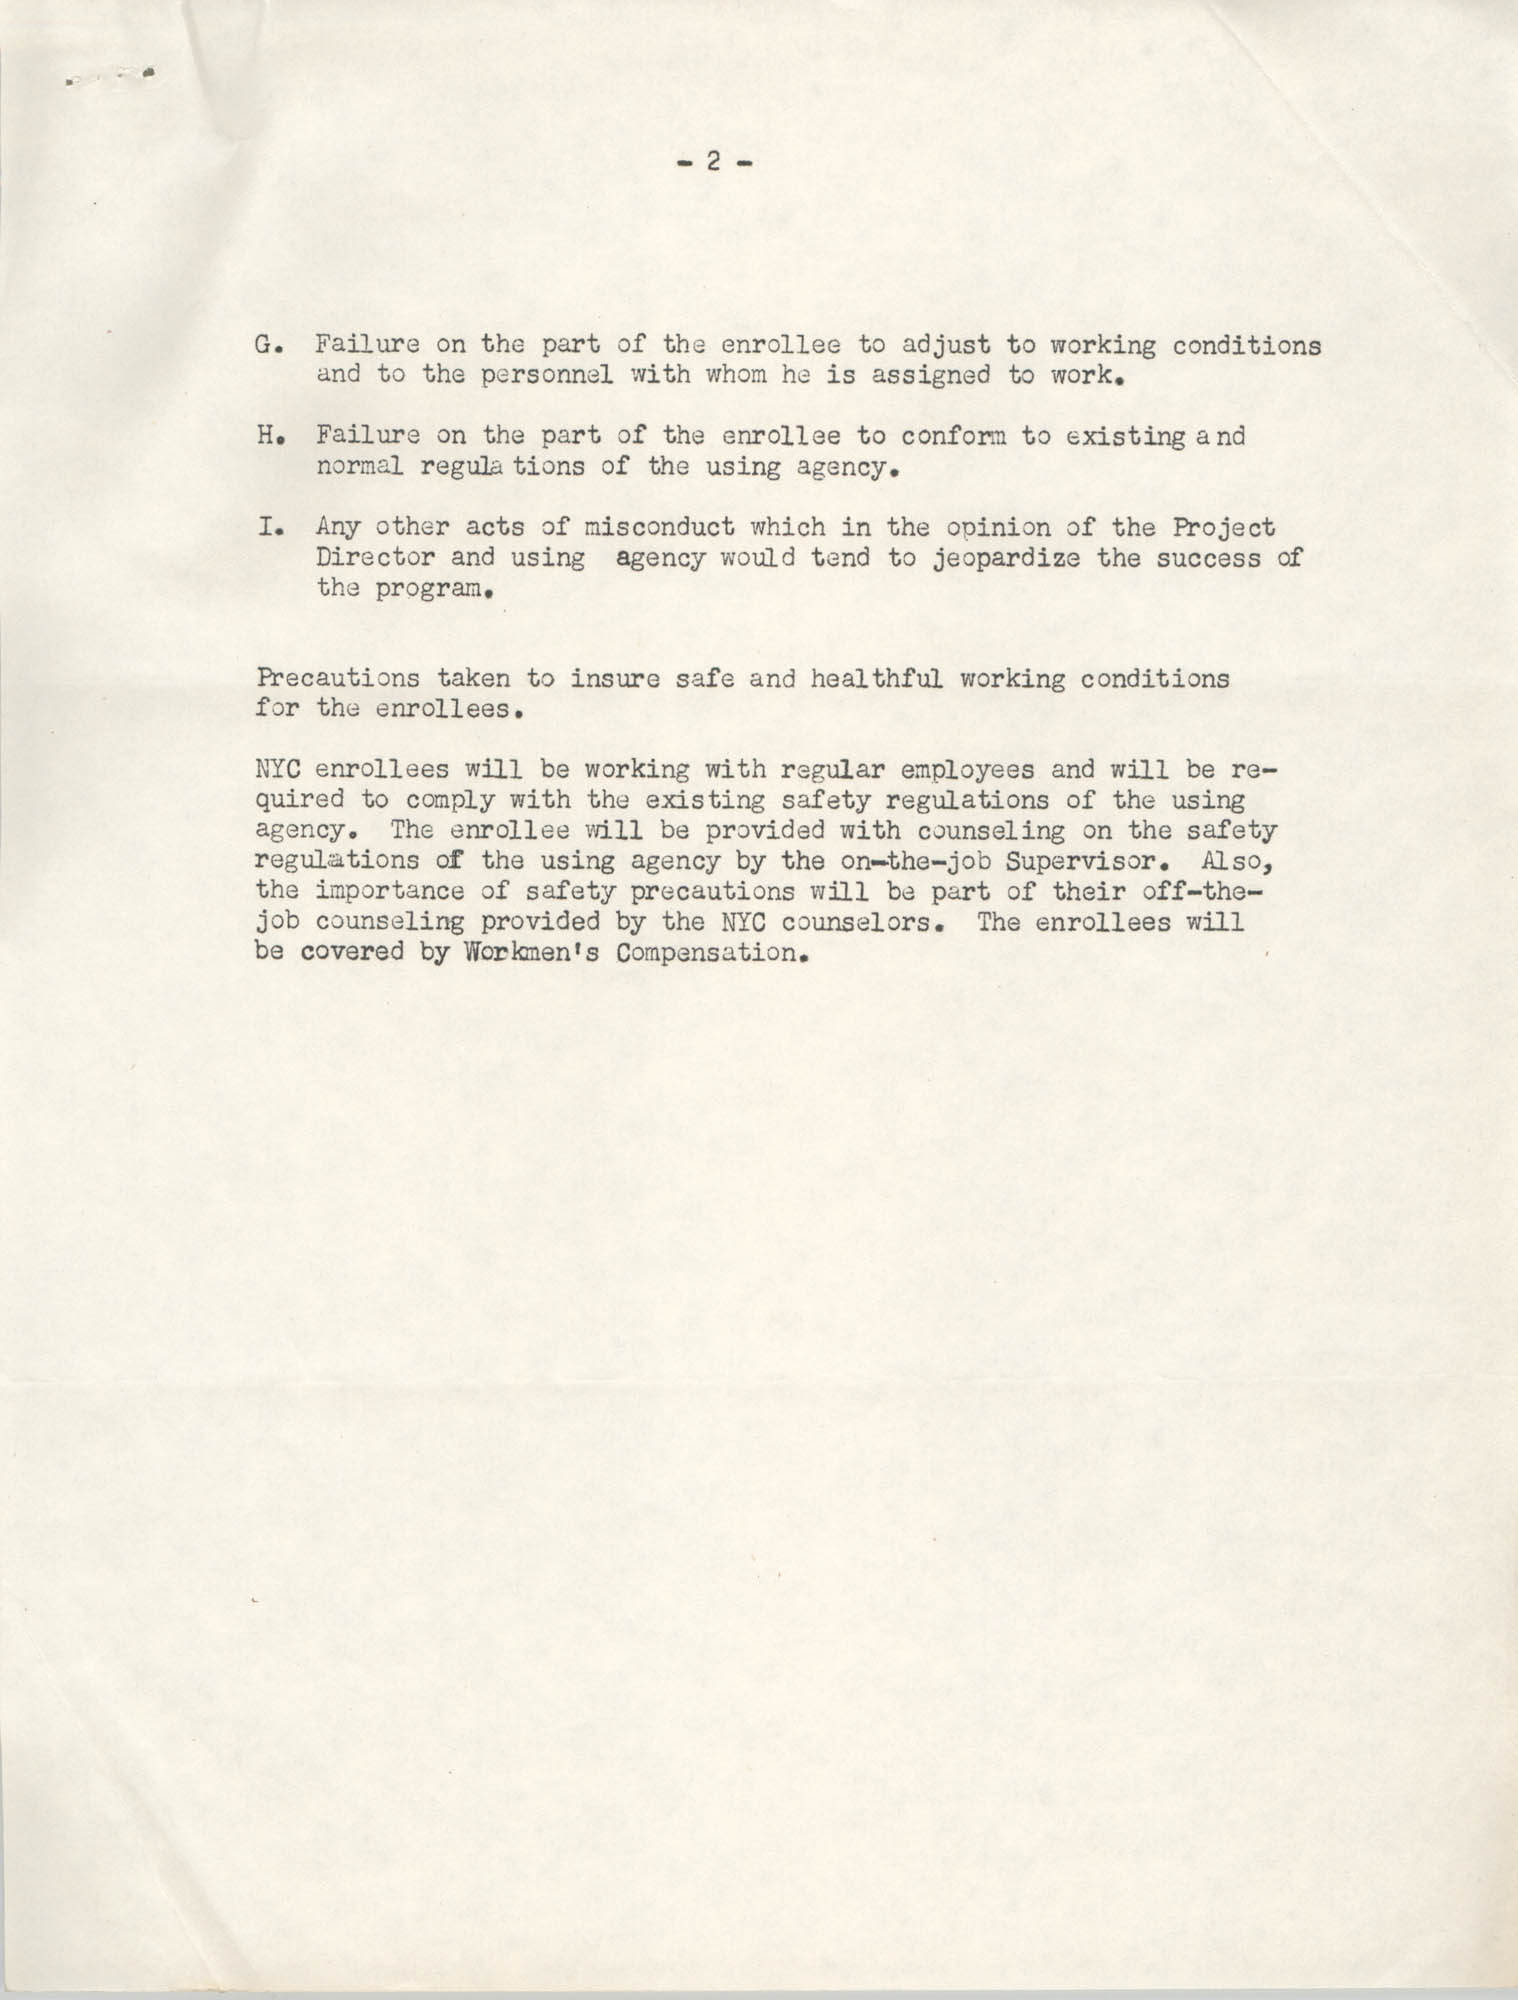 Neighborhood Youth Corps, Coming Street Y.W.C.A., Rules and Regulations, Page 2